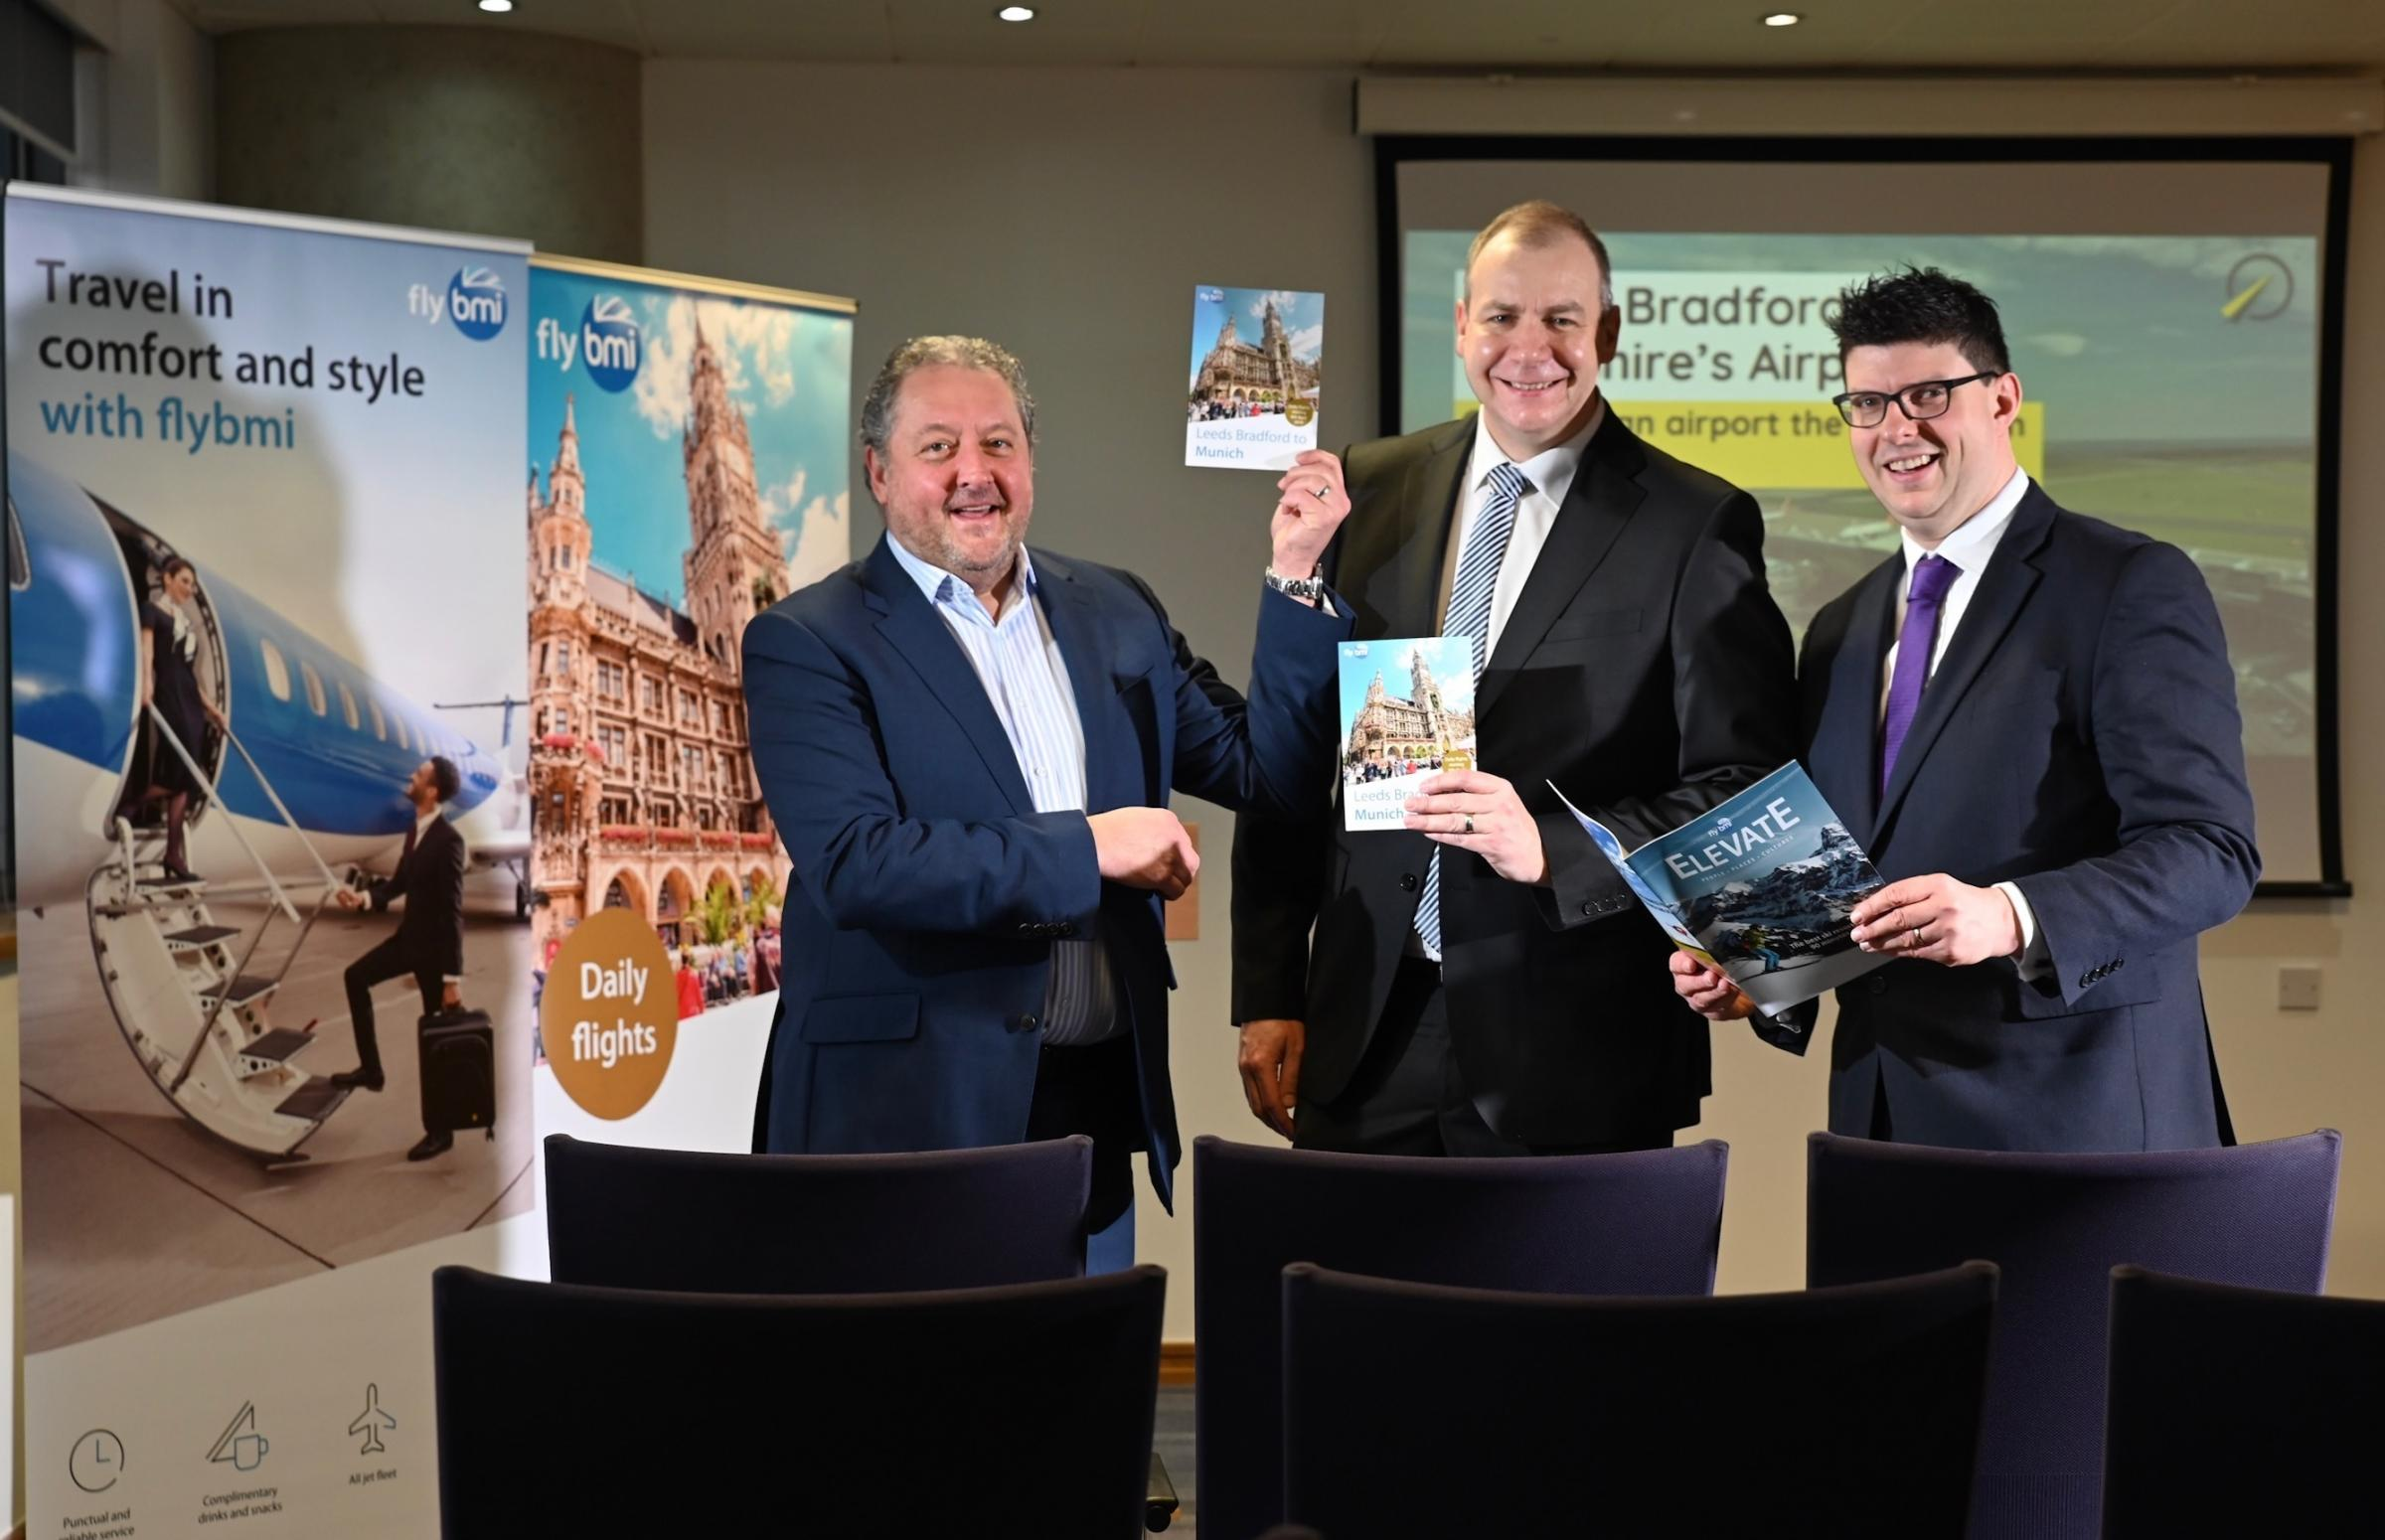 A promotional event for FlyBMI's new route from Leeds Bradford to Munich, taken last week